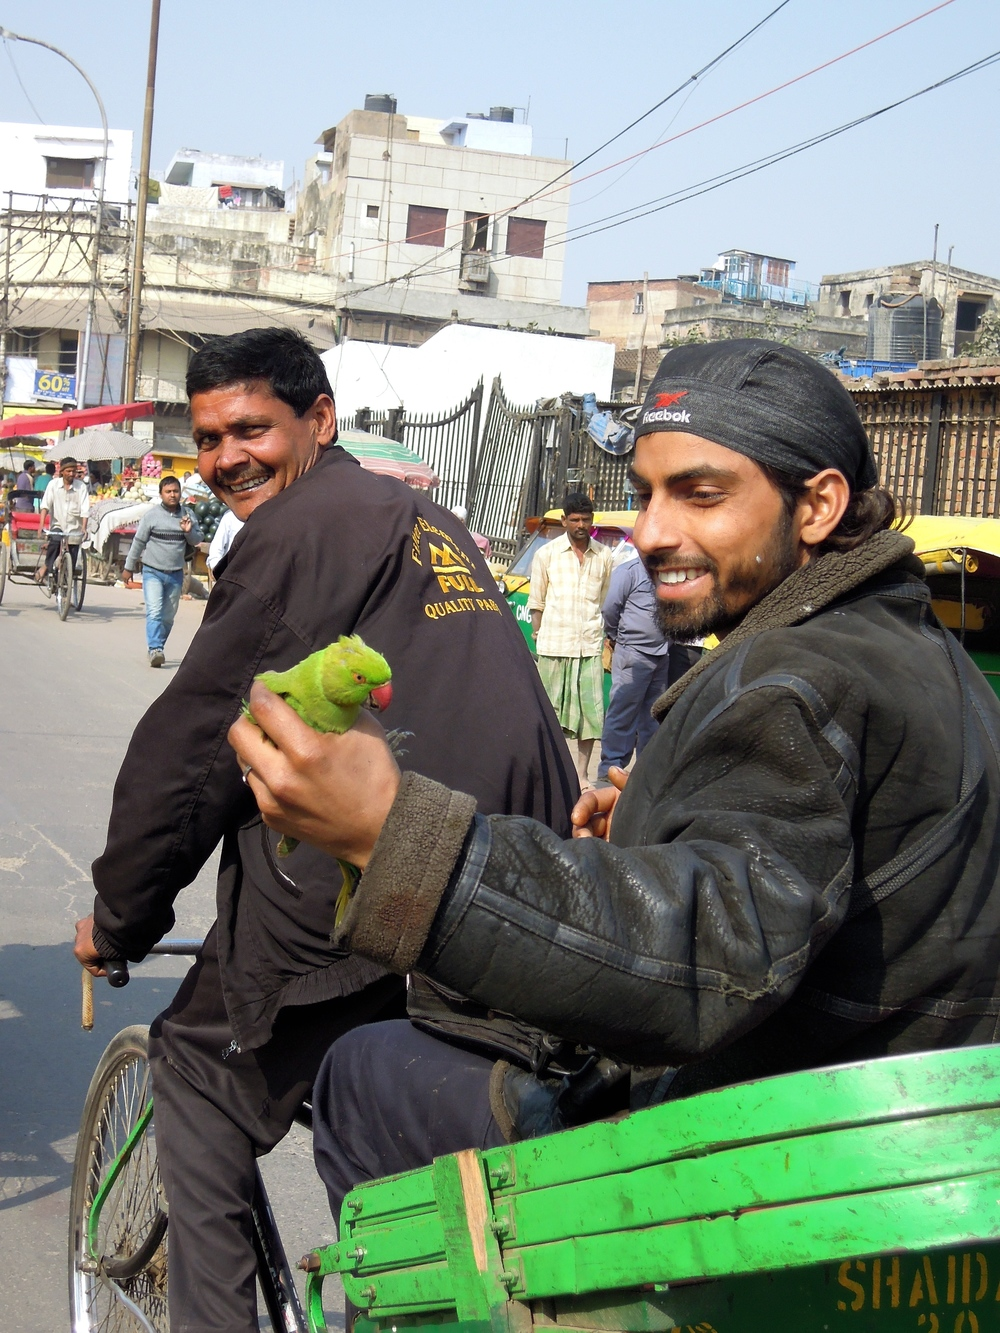 Parrot-a-porter: you can buy almost anything on the streets of Delhi.